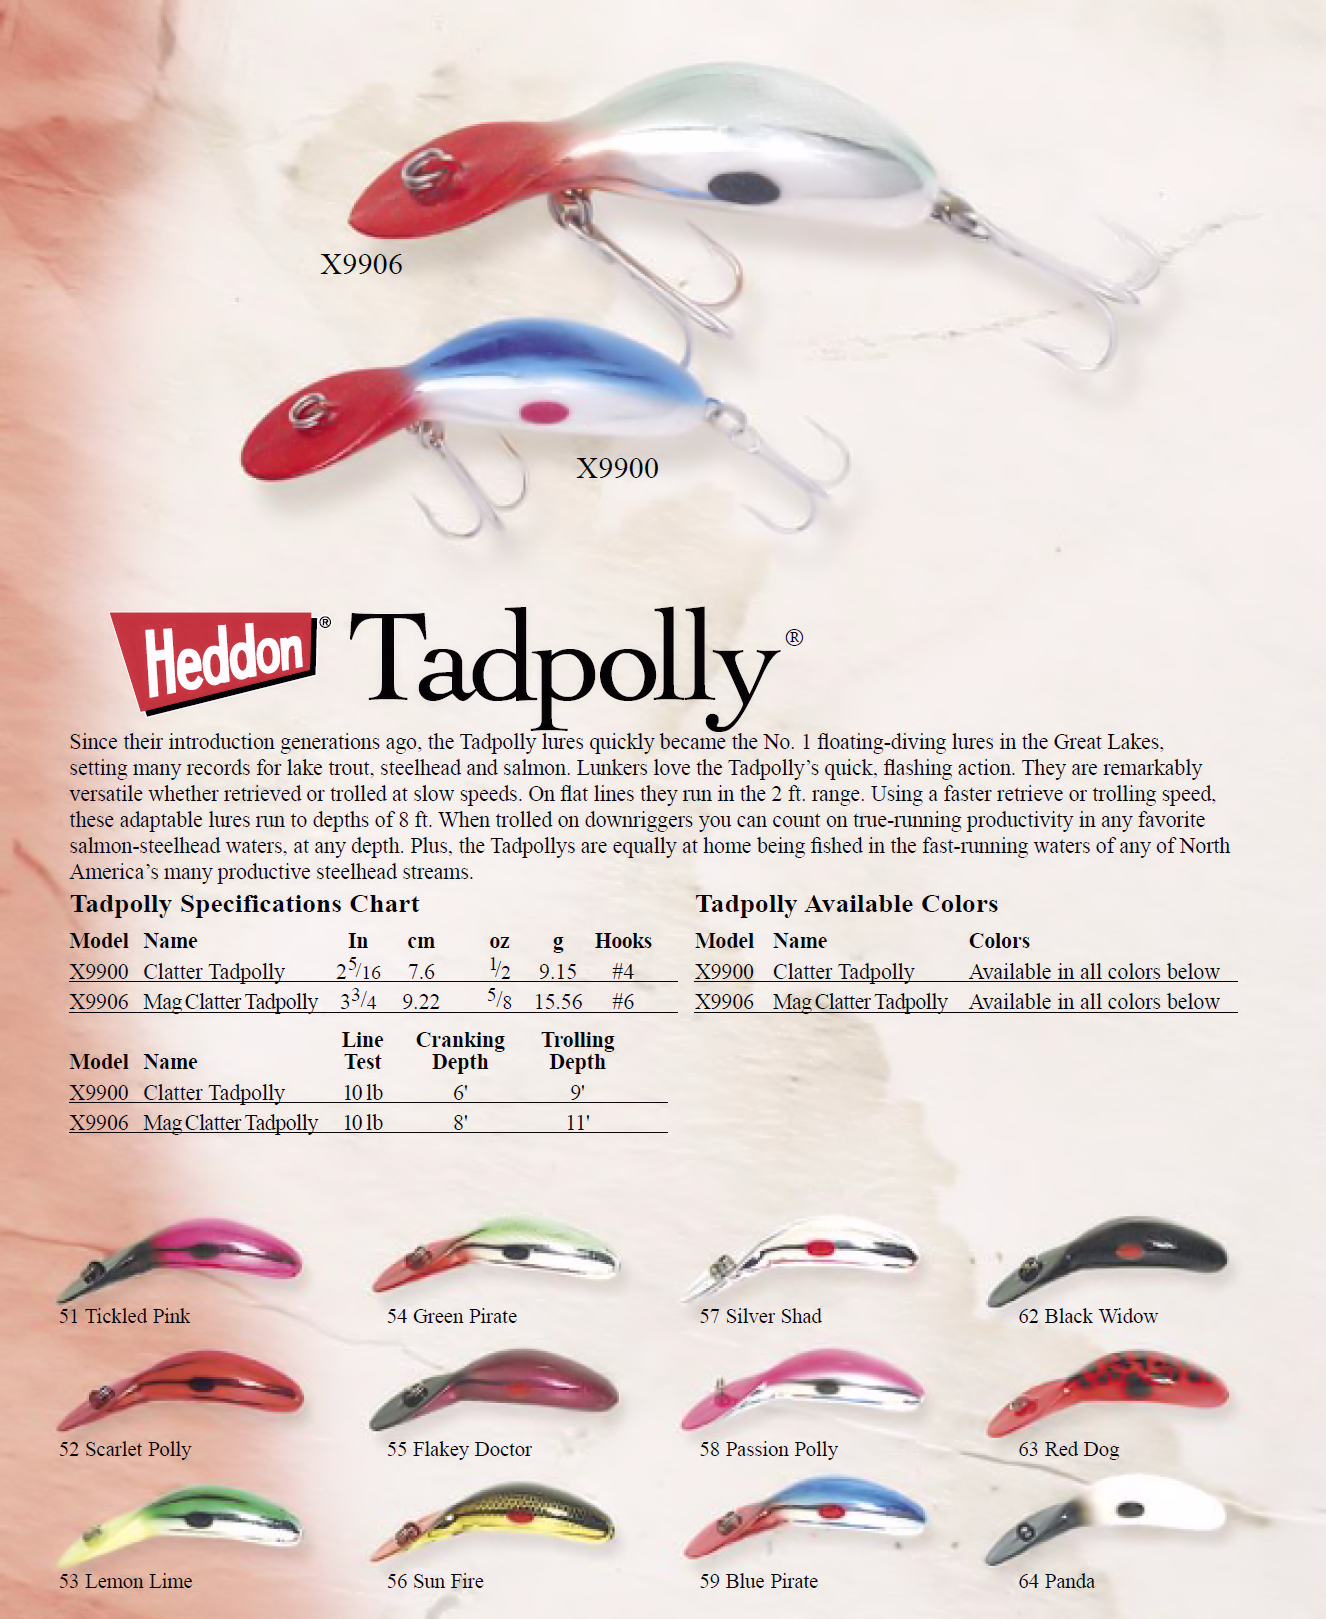 Heddon tadpolly 2005 color chart fishing lure color charts and heddon tadpolly 2005 color chart fishing nvjuhfo Image collections